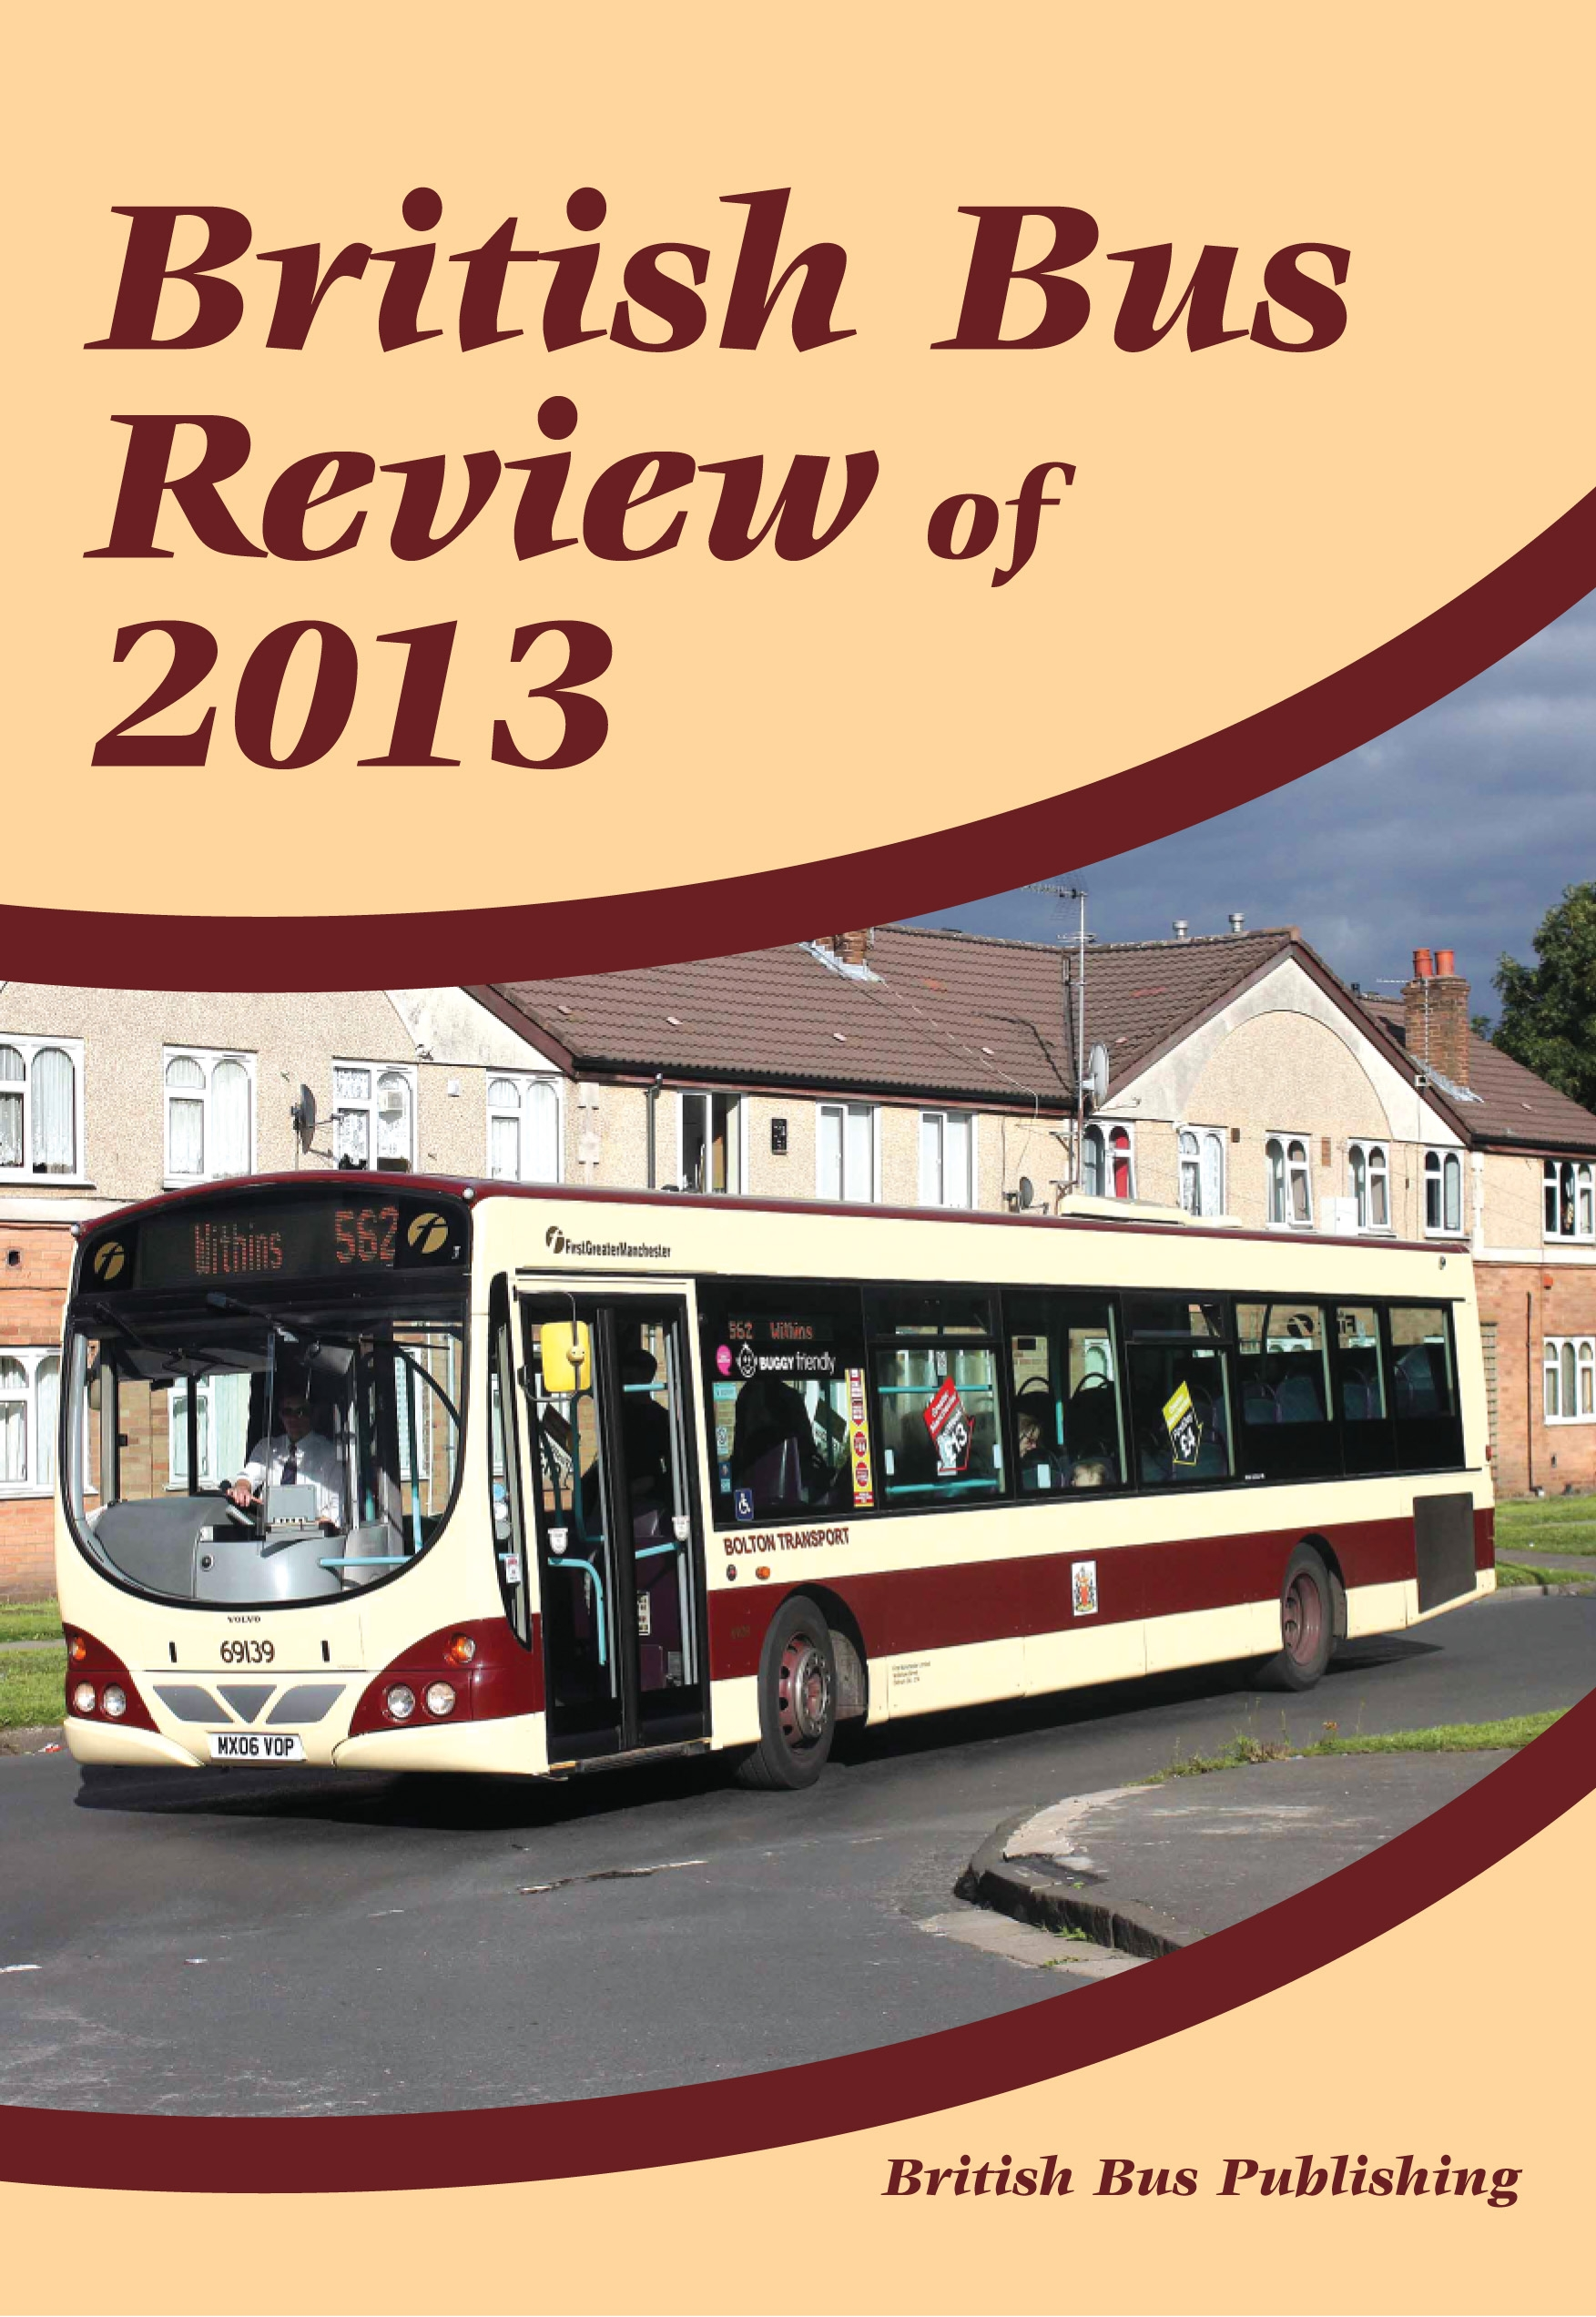 Bus Review and other books